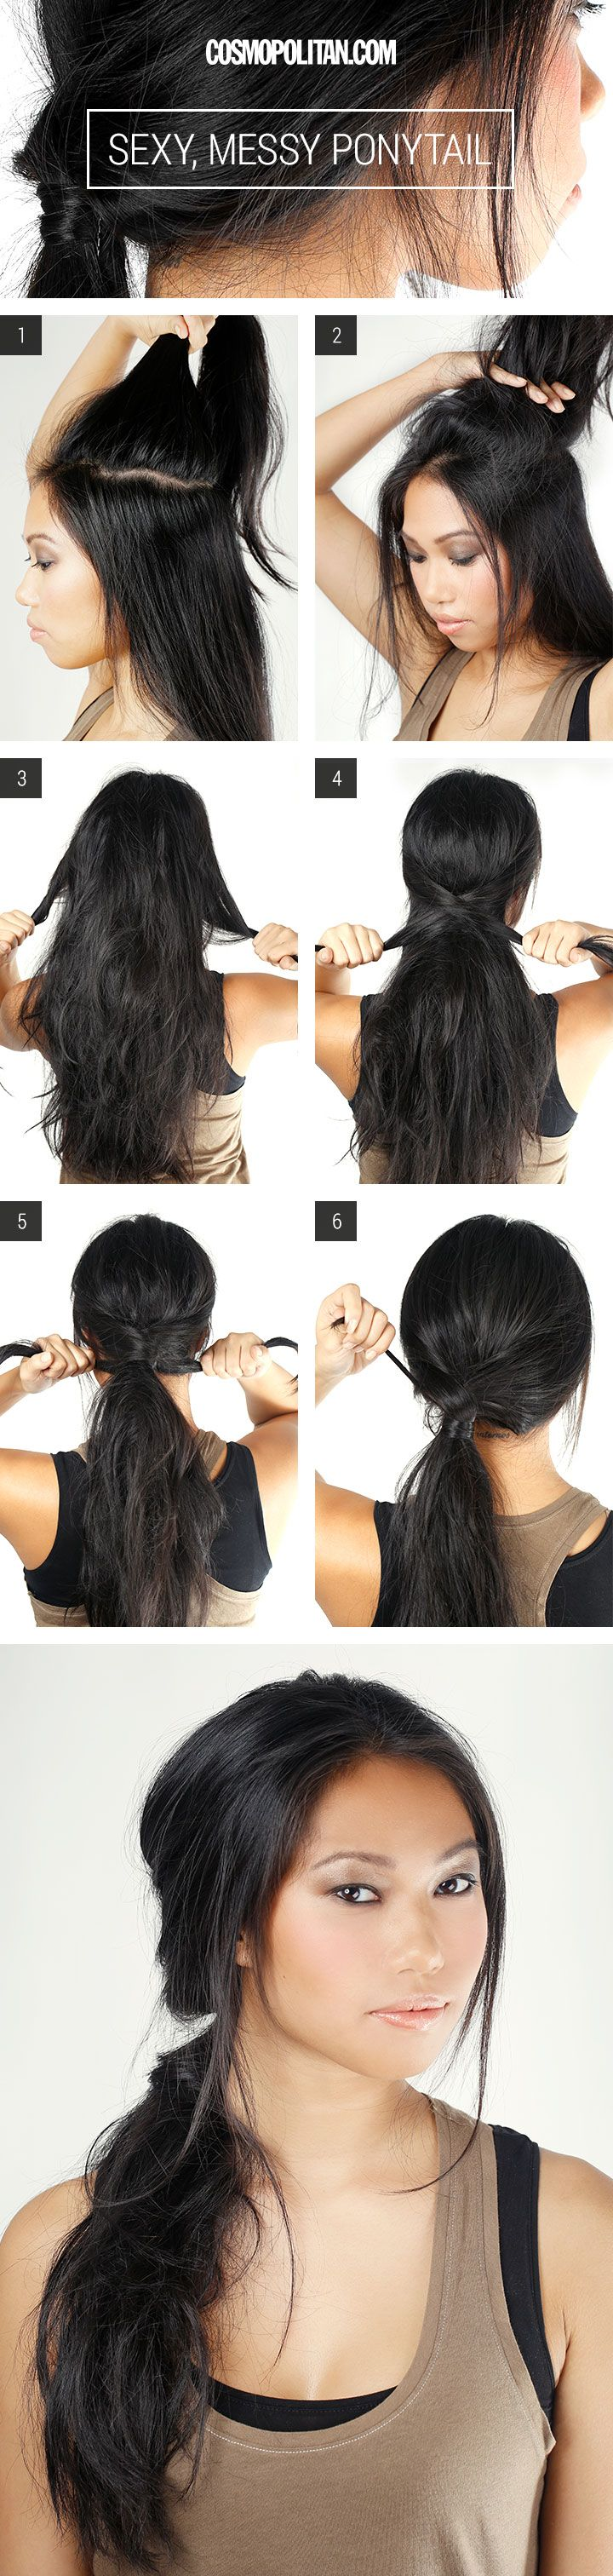 Hair howto sexy messy ponytail messy ponytail ponytail and